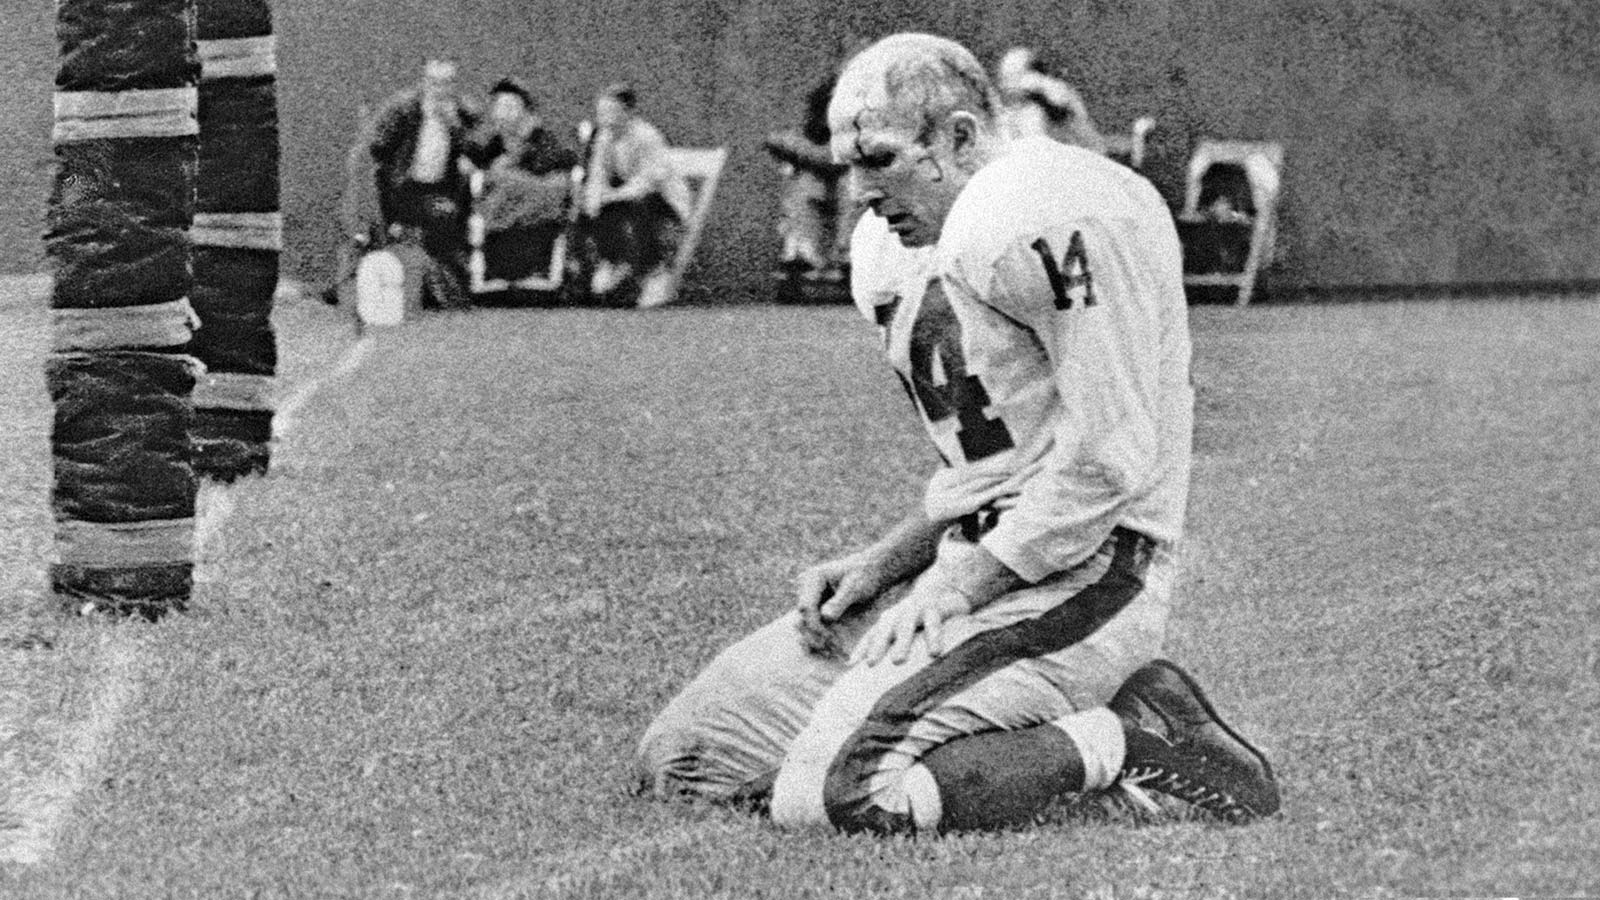 Legendary LSU, NFL QB YA Tittle dies at 90